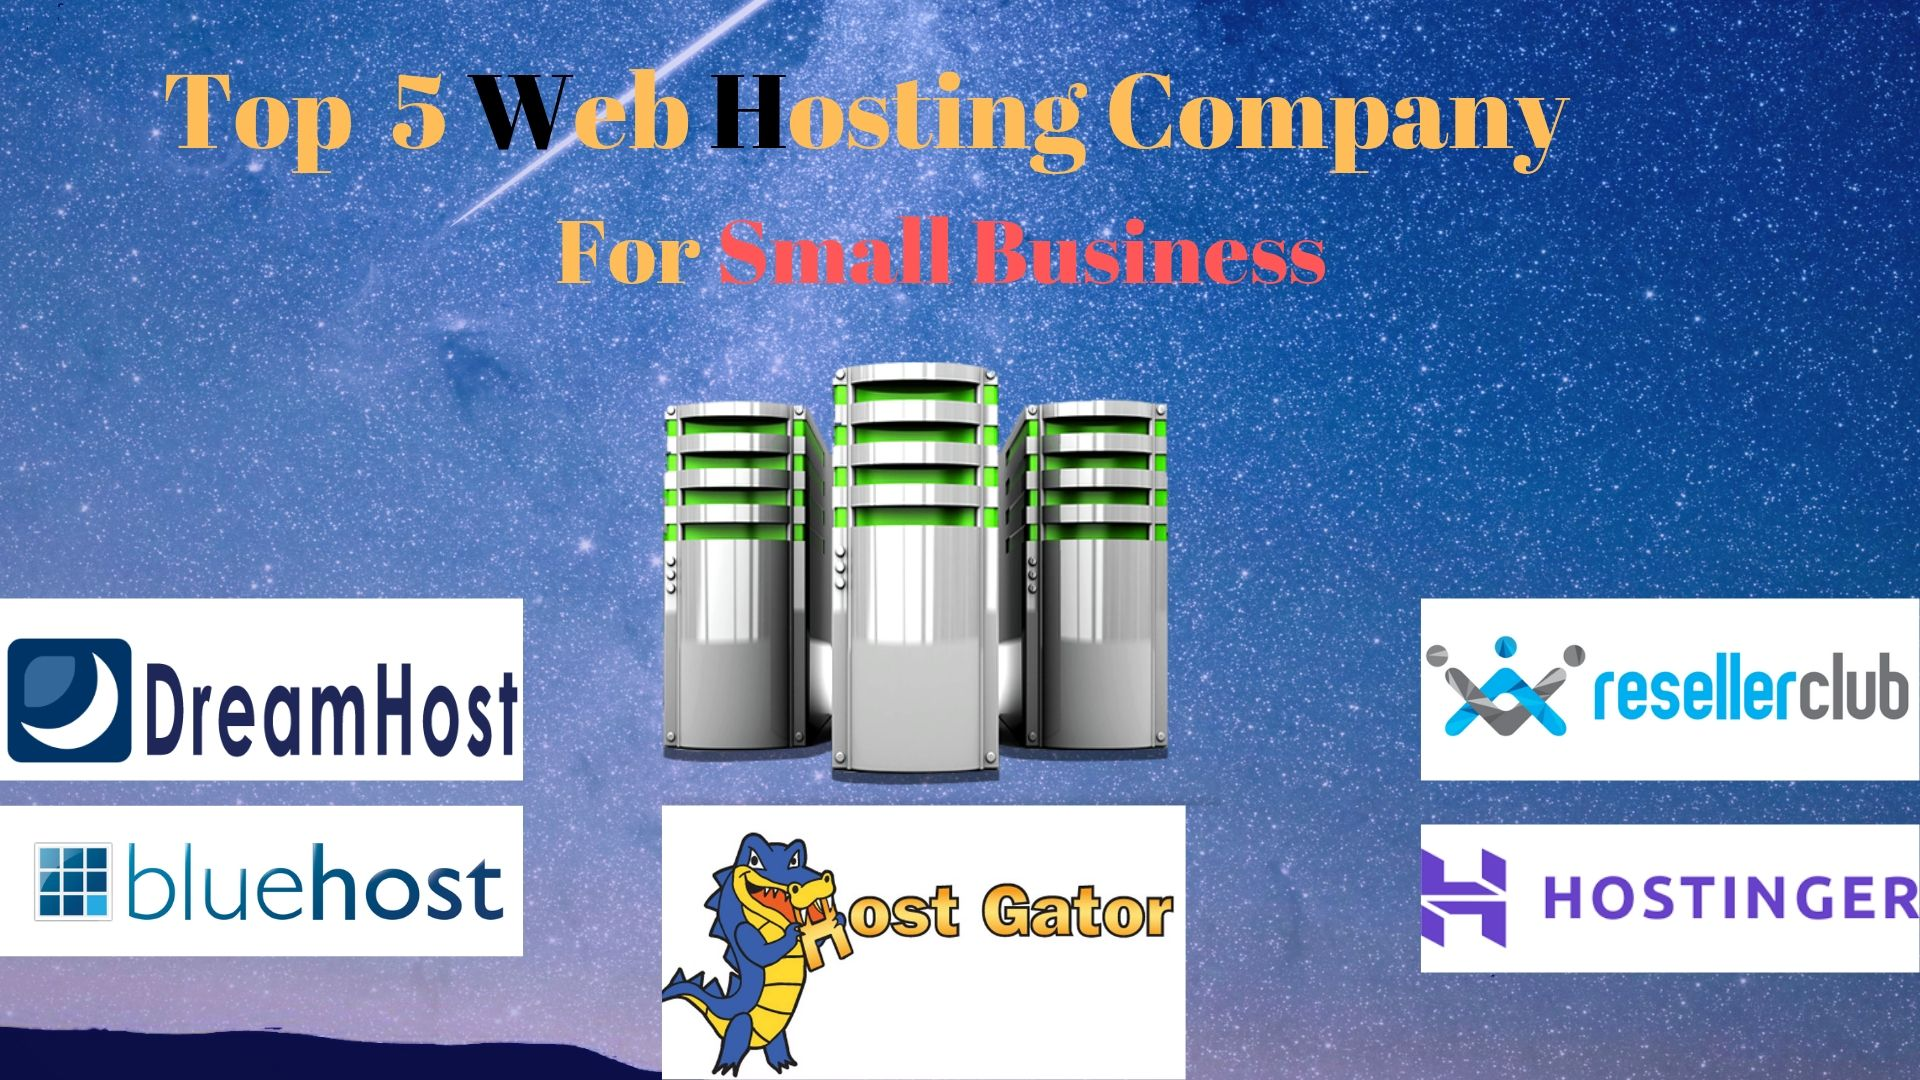 Top 5 Web Hosting for Small Business